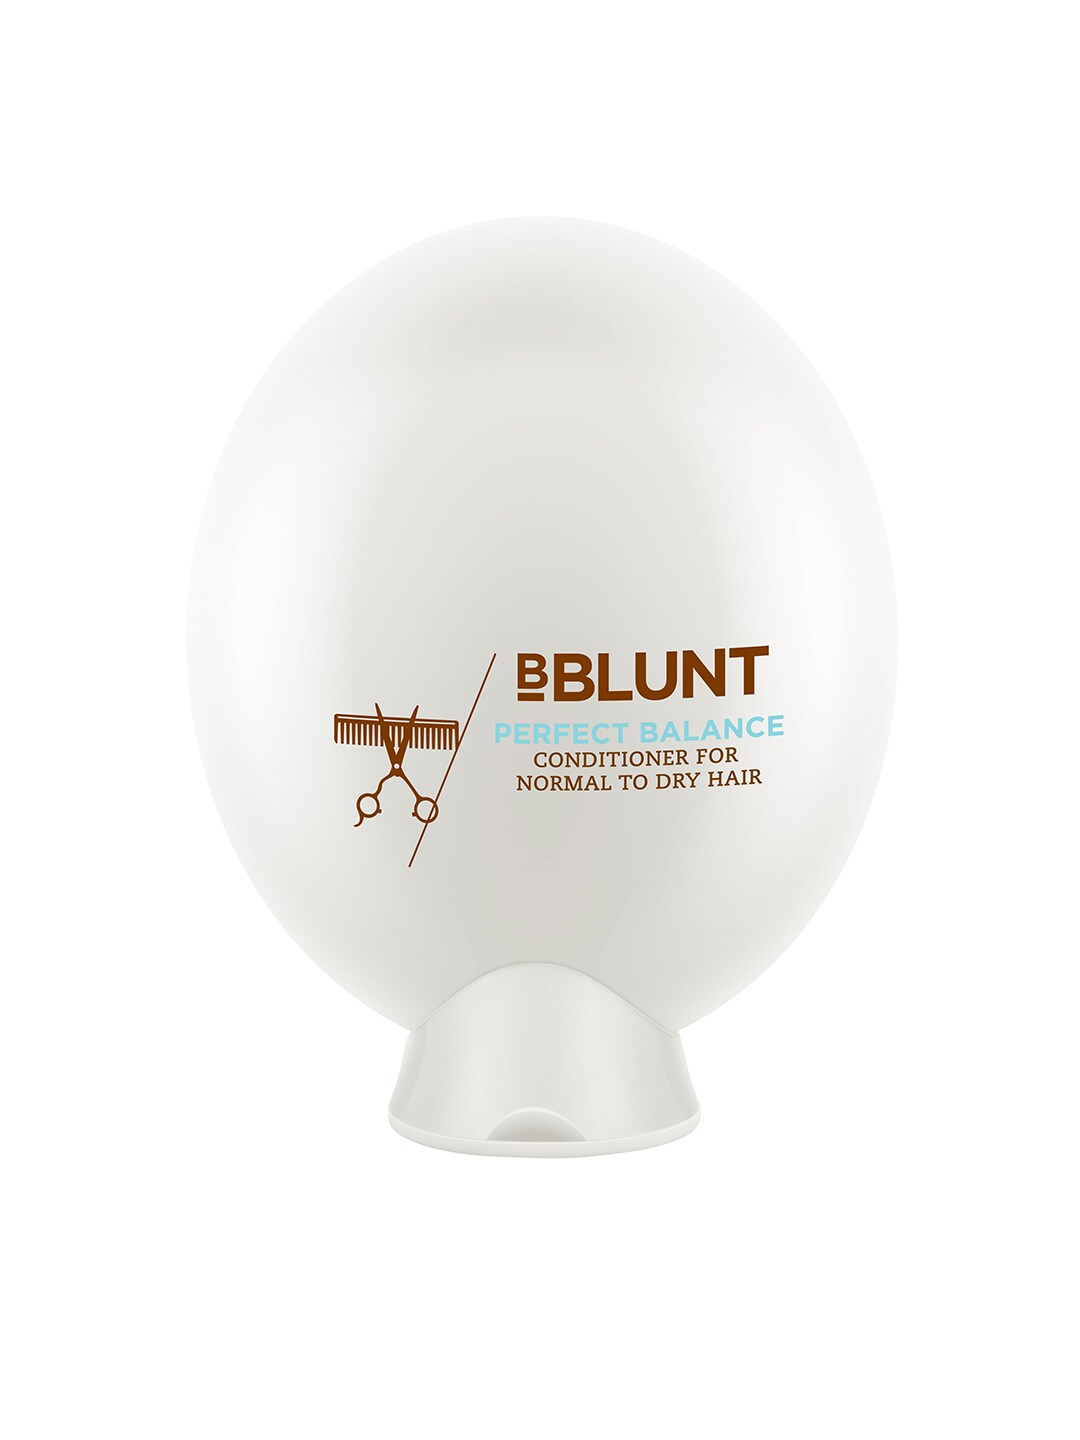 BBLUNT Perfect Balance Conditioner For Normal To Dry Hair 200 g image